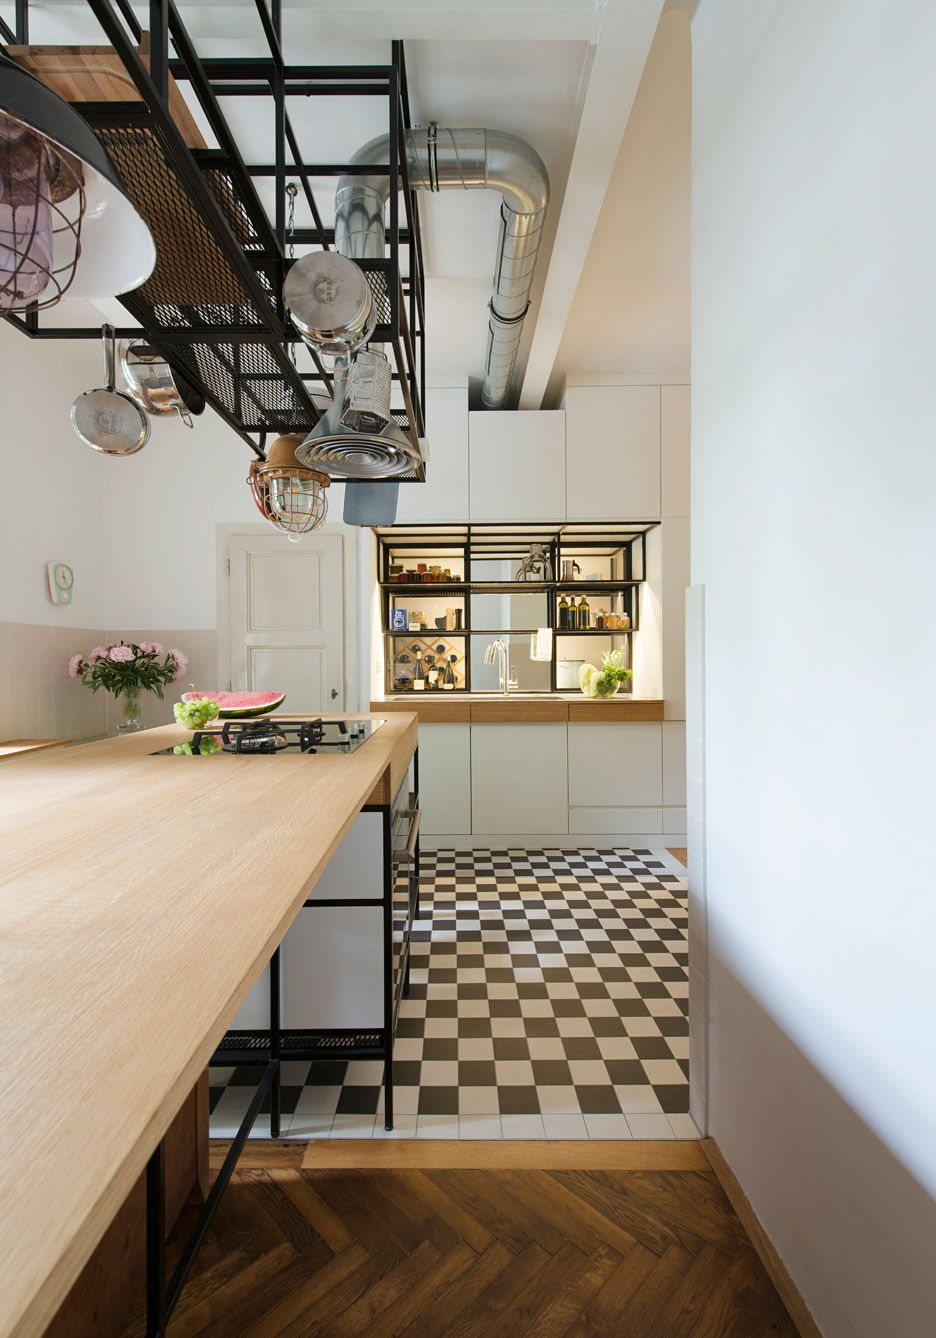 IFUB has installed bespoke black steel fittings in 1930s Art Deco apartment  renovation.